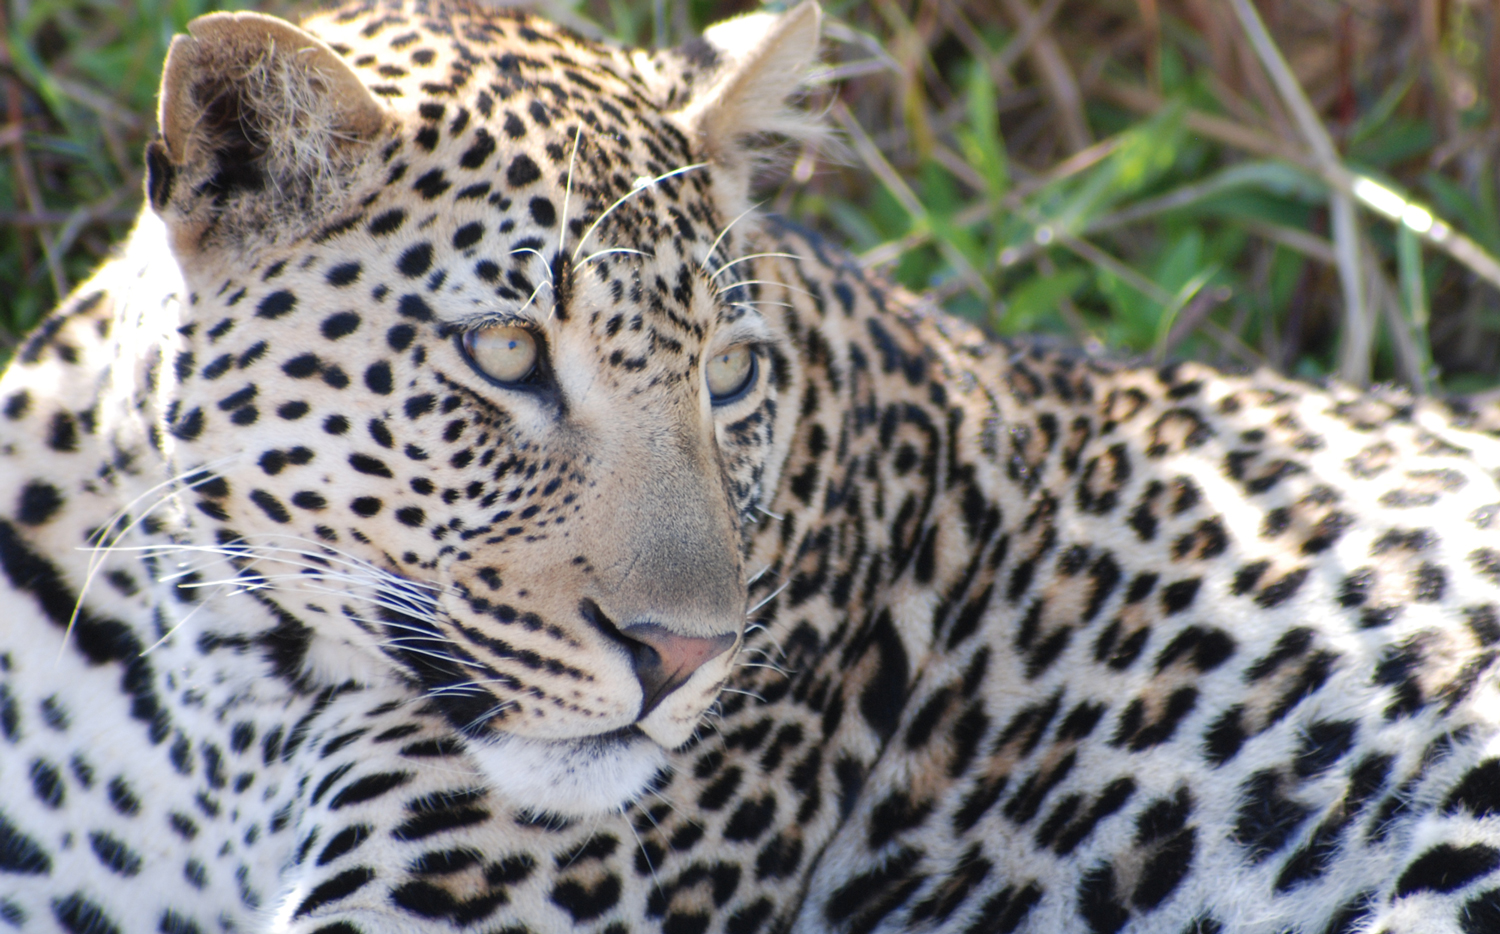 Animals_leopard_1_web.jpg